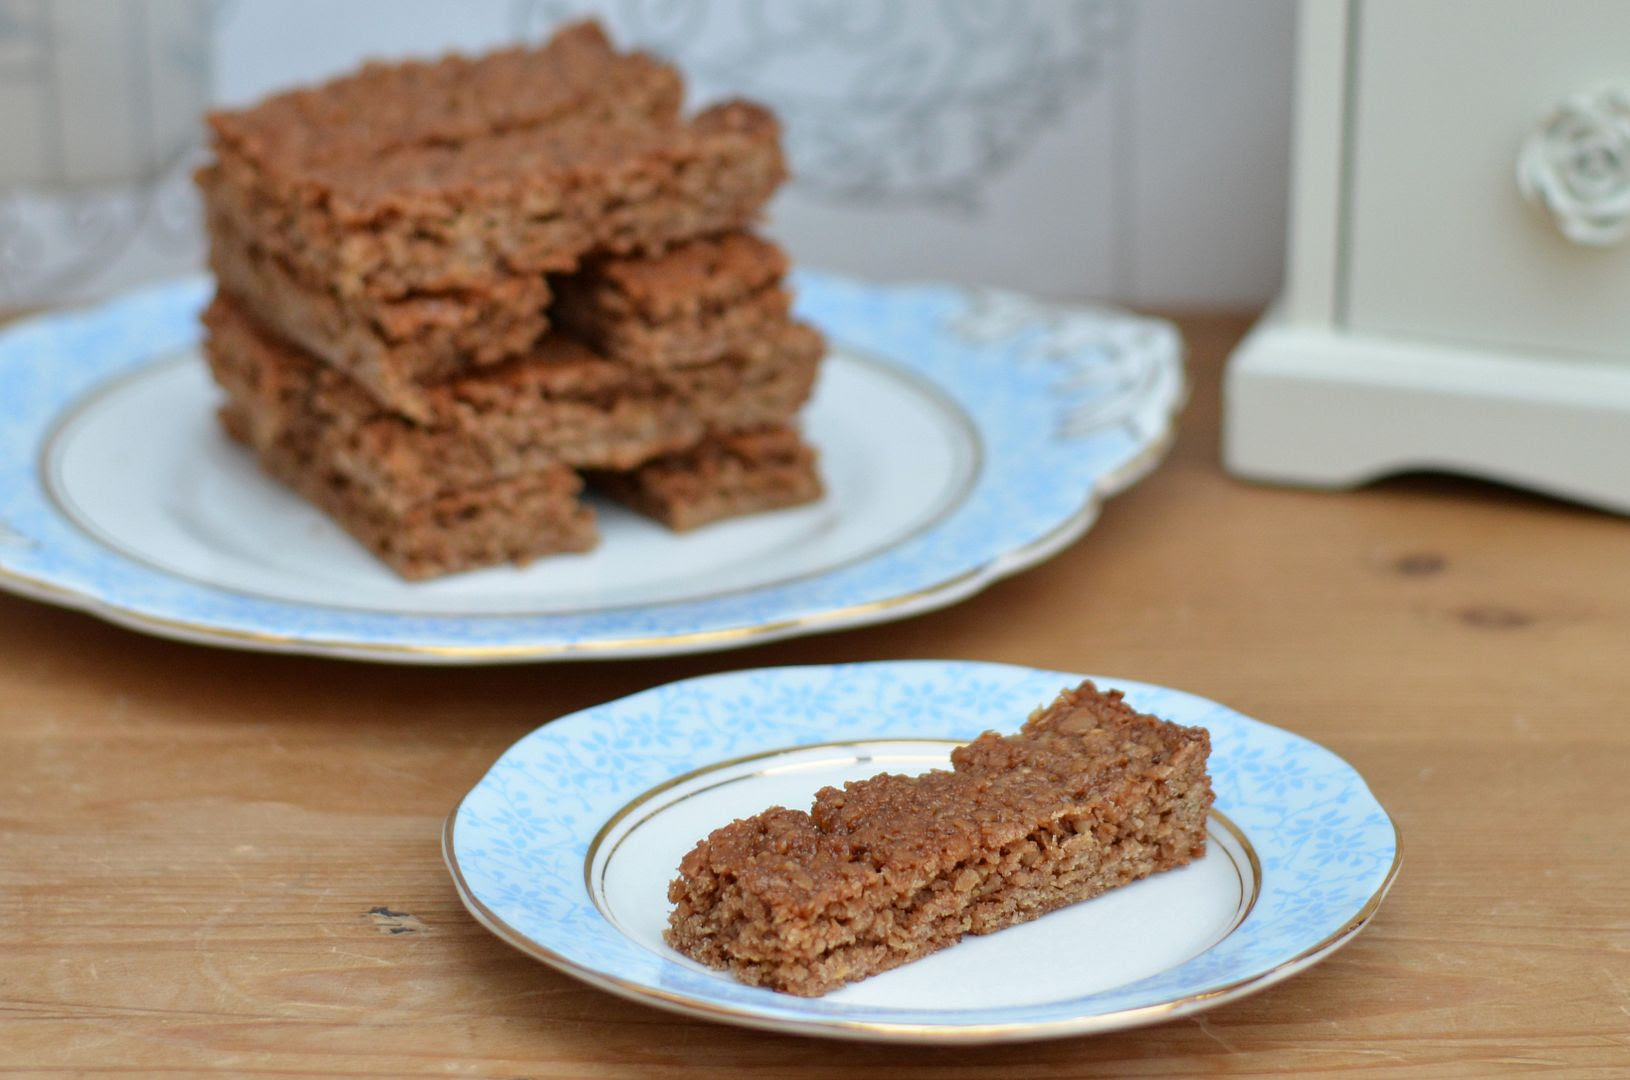 photo chaiflapjacks4jpg_zpsb22cf444.jpg